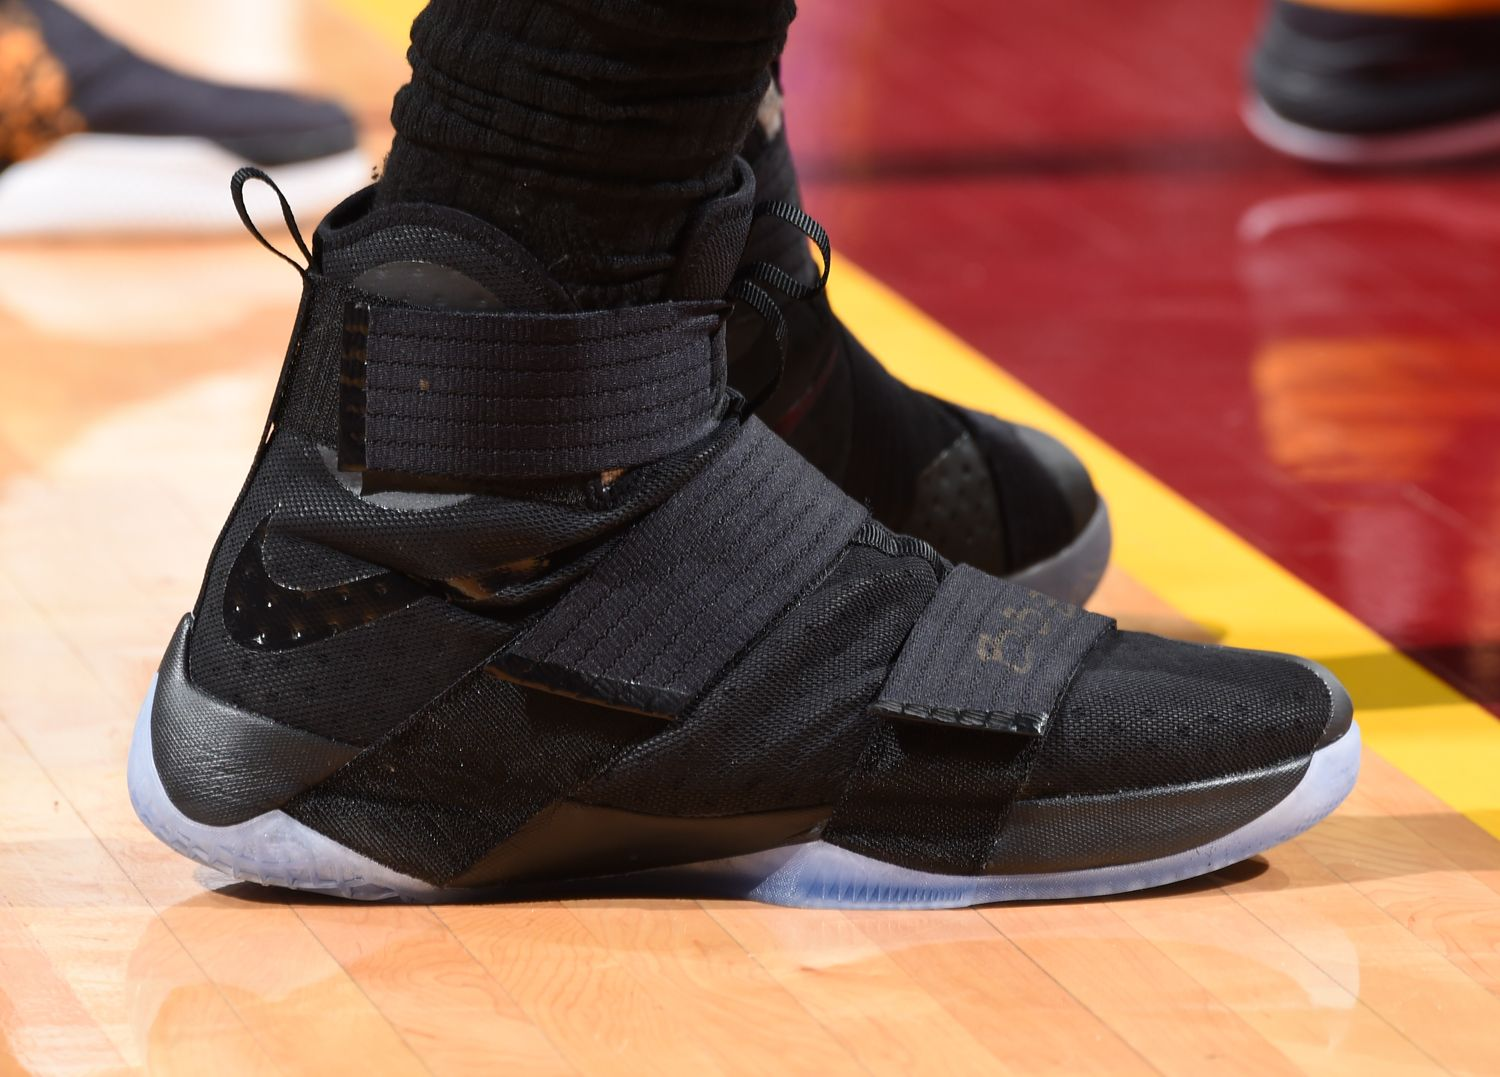 c4f23110077 CLEVELAND, OH - JUNE 8: The shoes of LeBron James #23 of the Cleveland  Cavaliers are seen against the Golden State Warriors during Game Three of  the 2016 ...